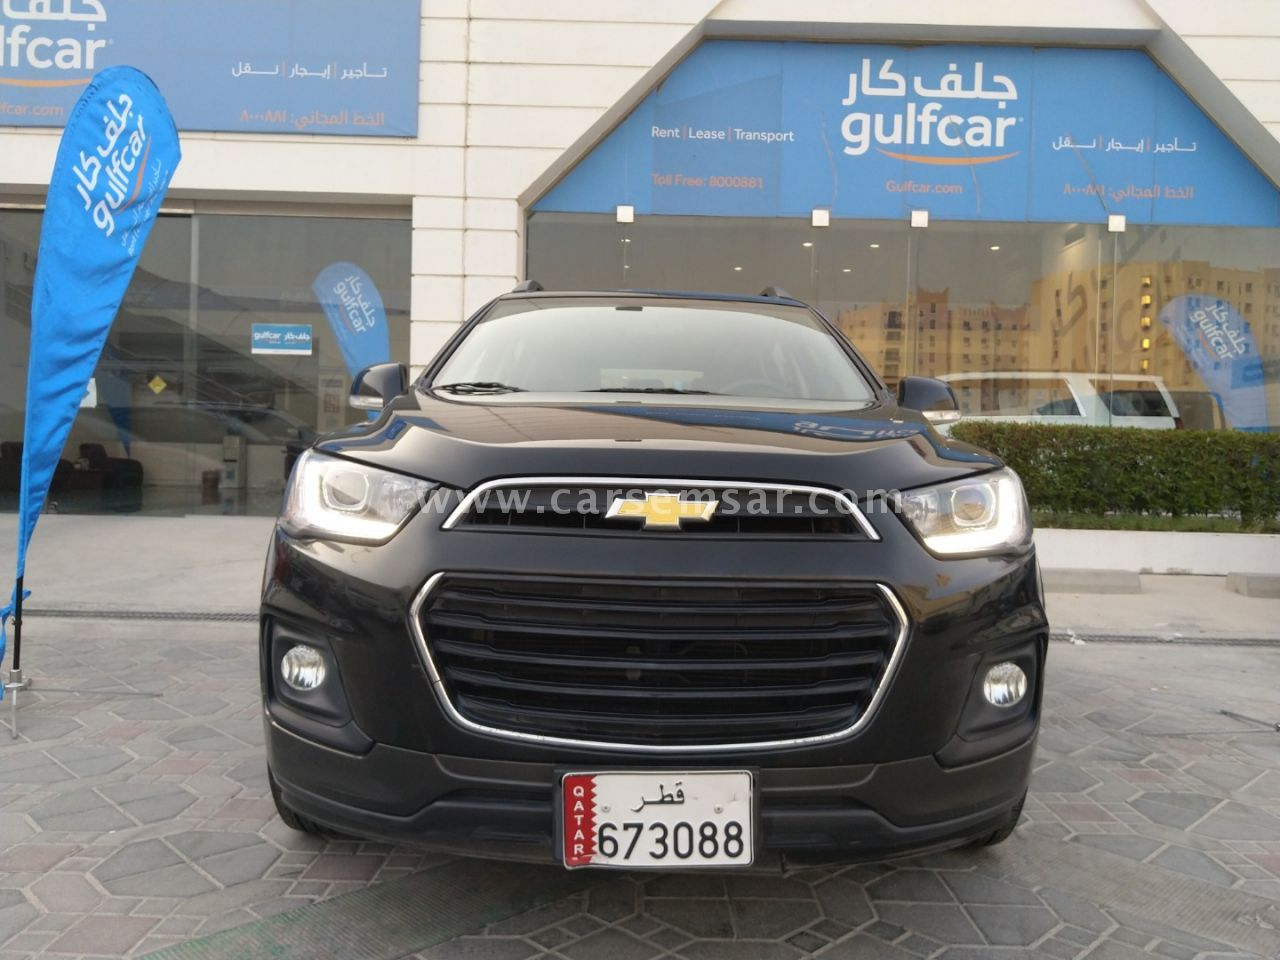 2016 Chevrolet Captiva 2 4 Ls For Sale In Qatar New And Used Cars